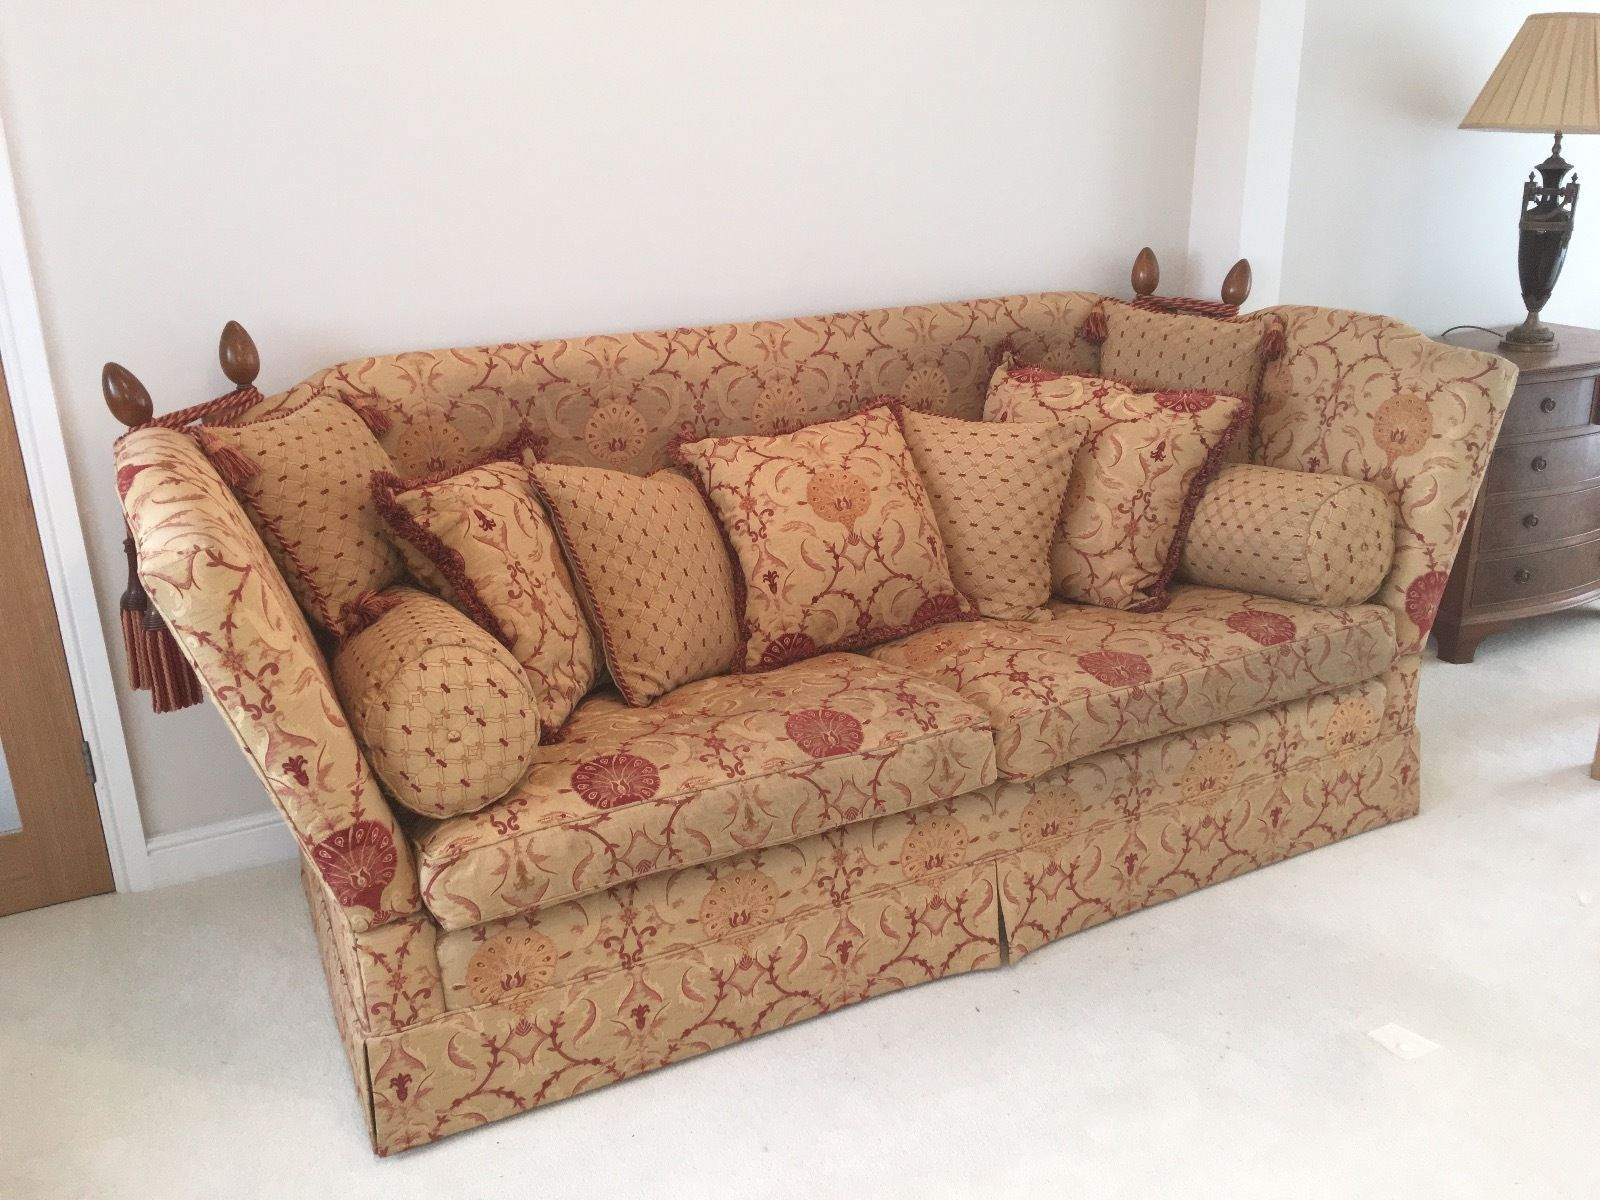 Designer DAVID GUNDRY Manhattan Major 3 seater sofa knole drop arm